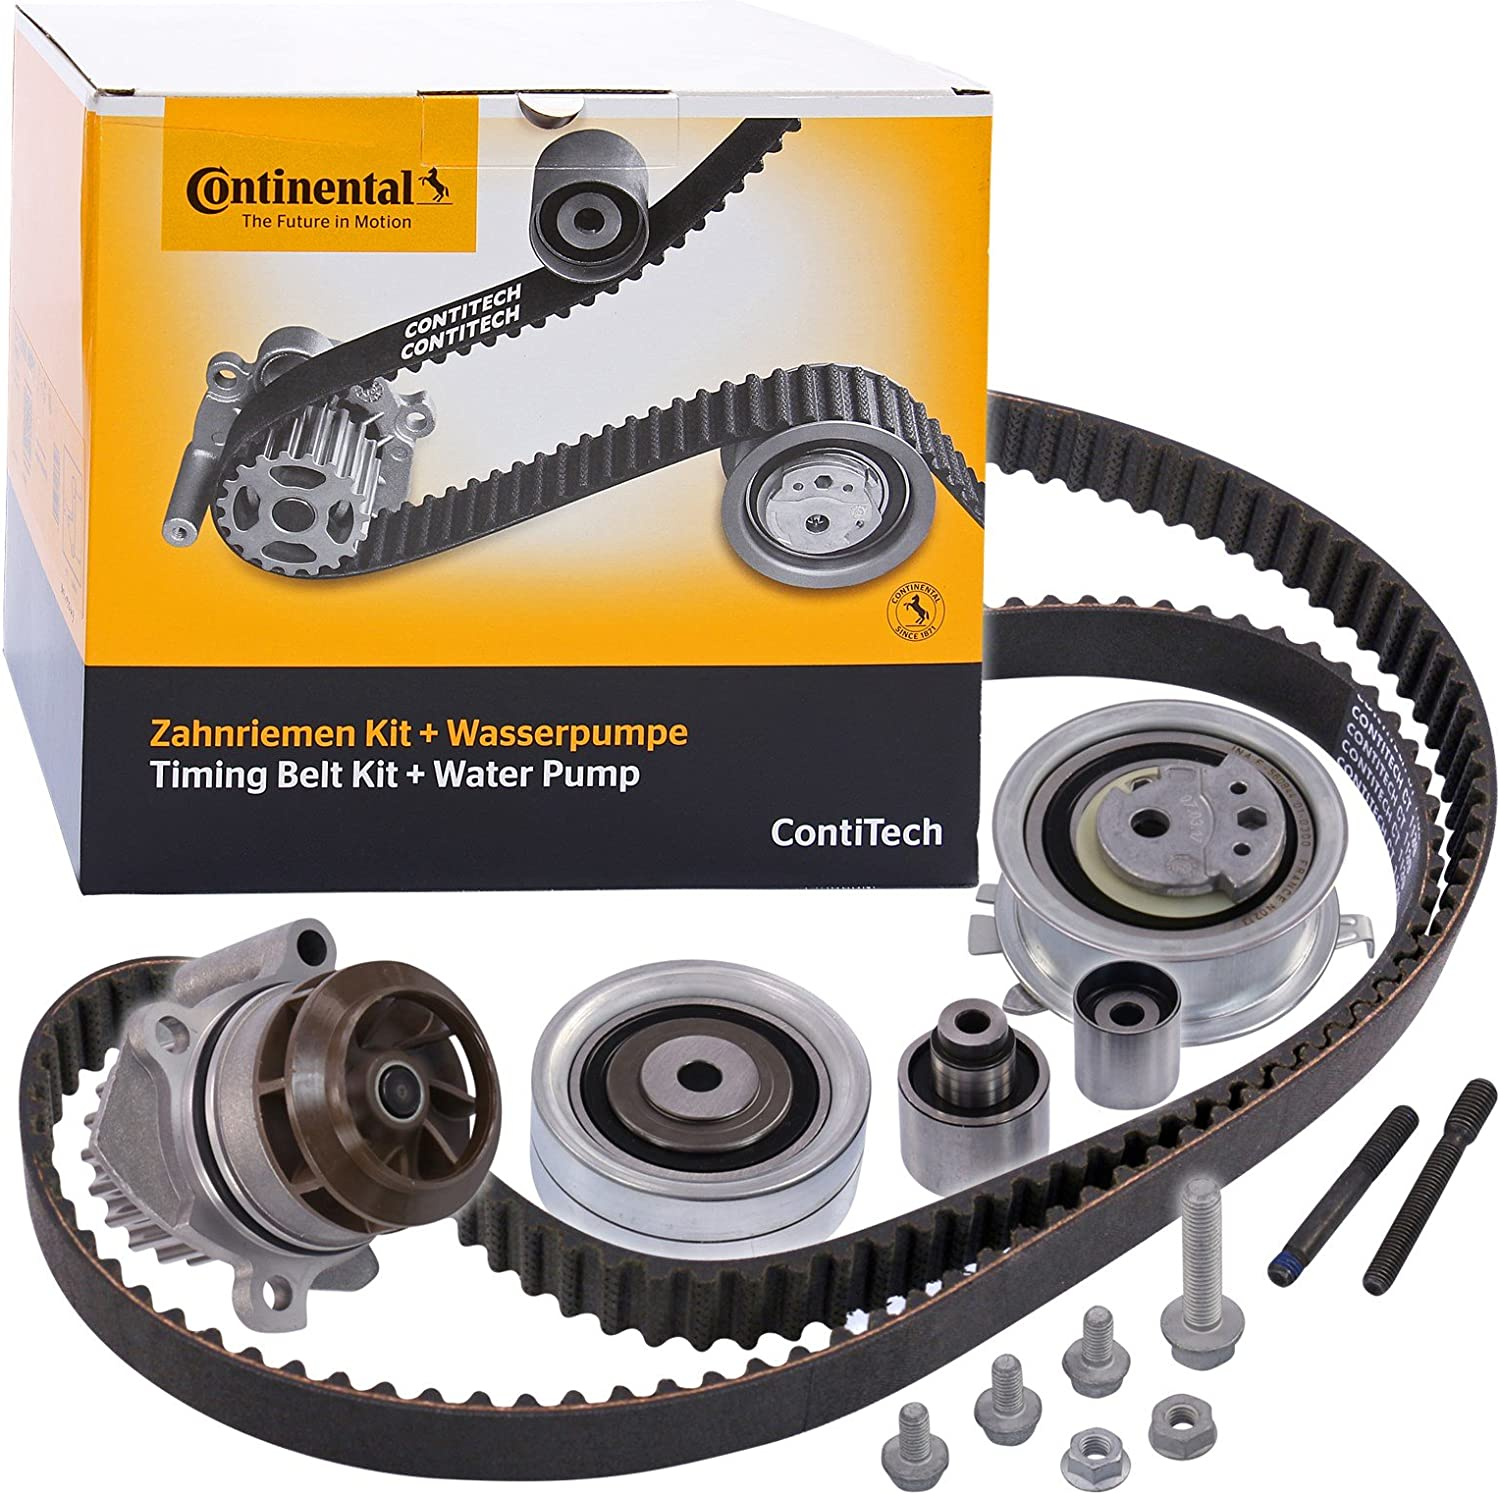 Contitech Ct1139wp6 Water Pump And Timing Belt Kit Auto